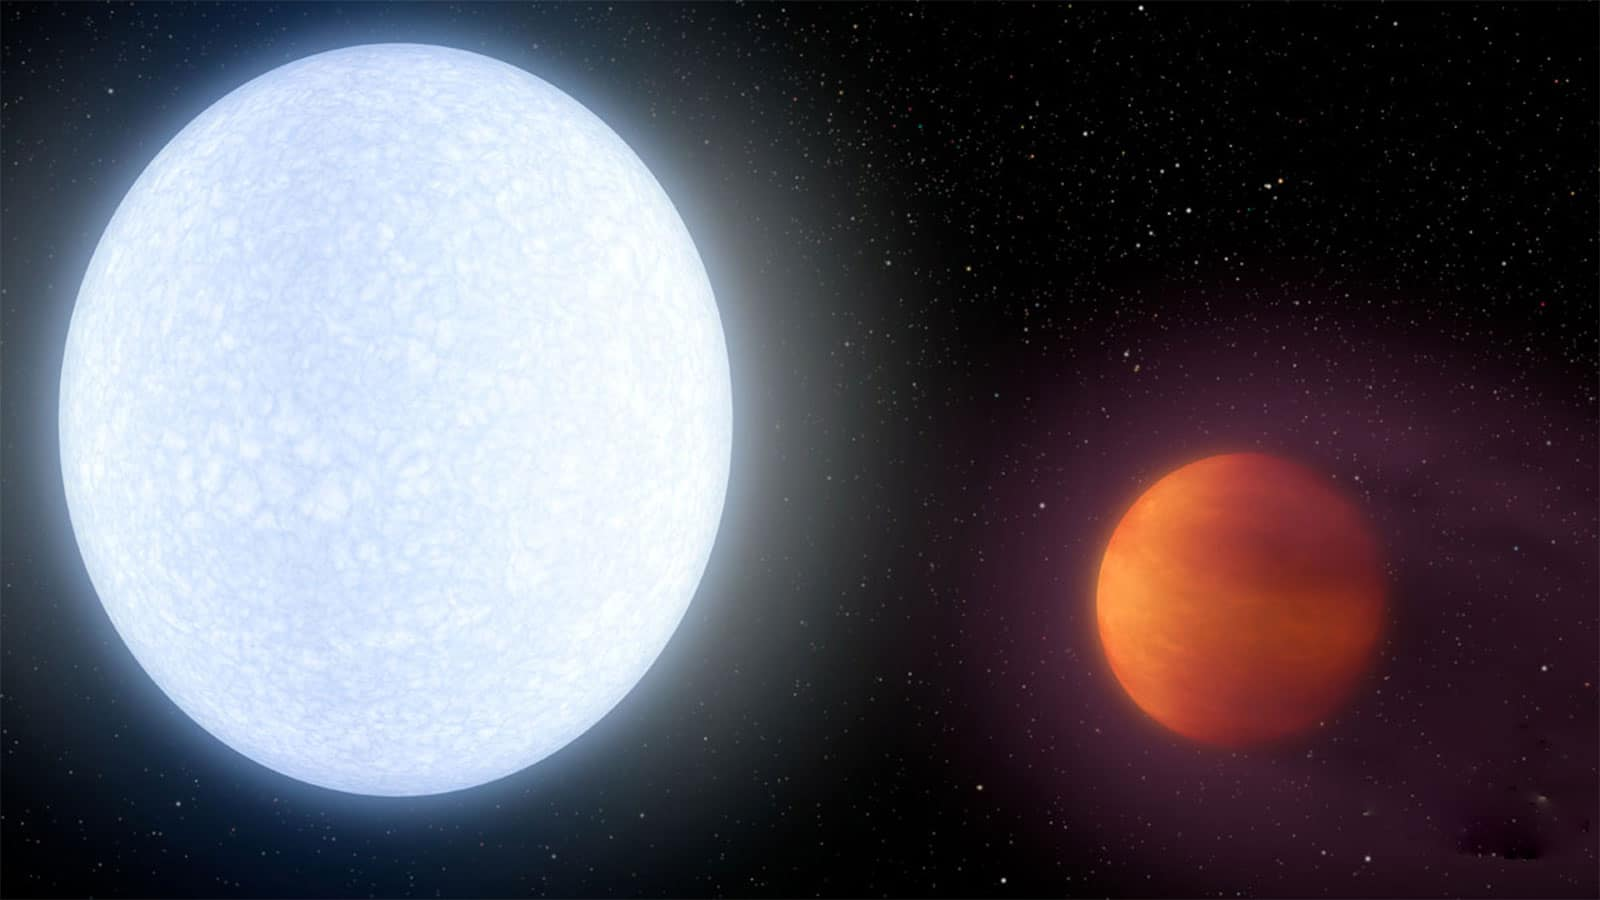 The hottest exoplanet KELT-9b